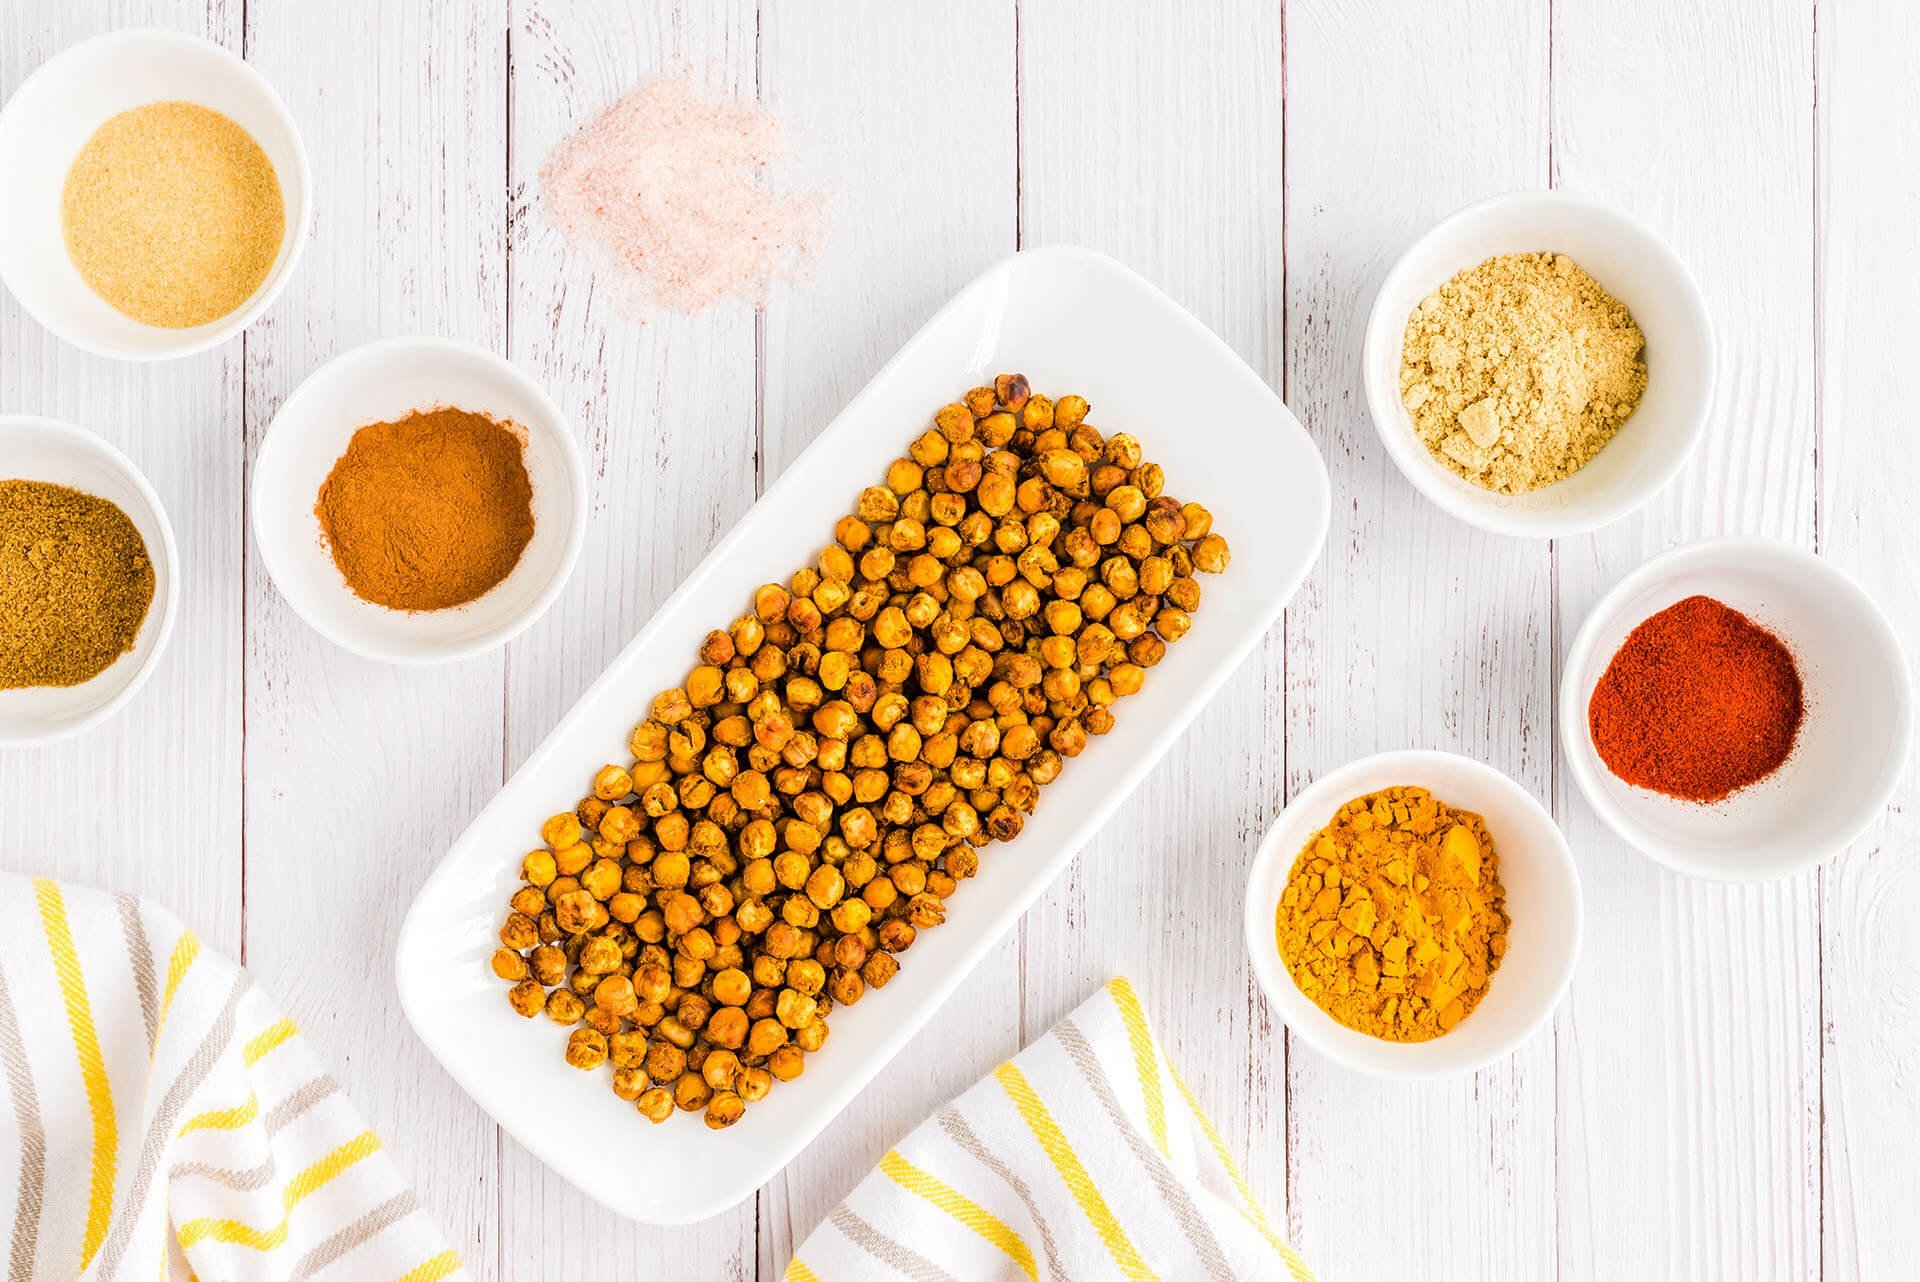 moroccan baked chickpeas on serving tray